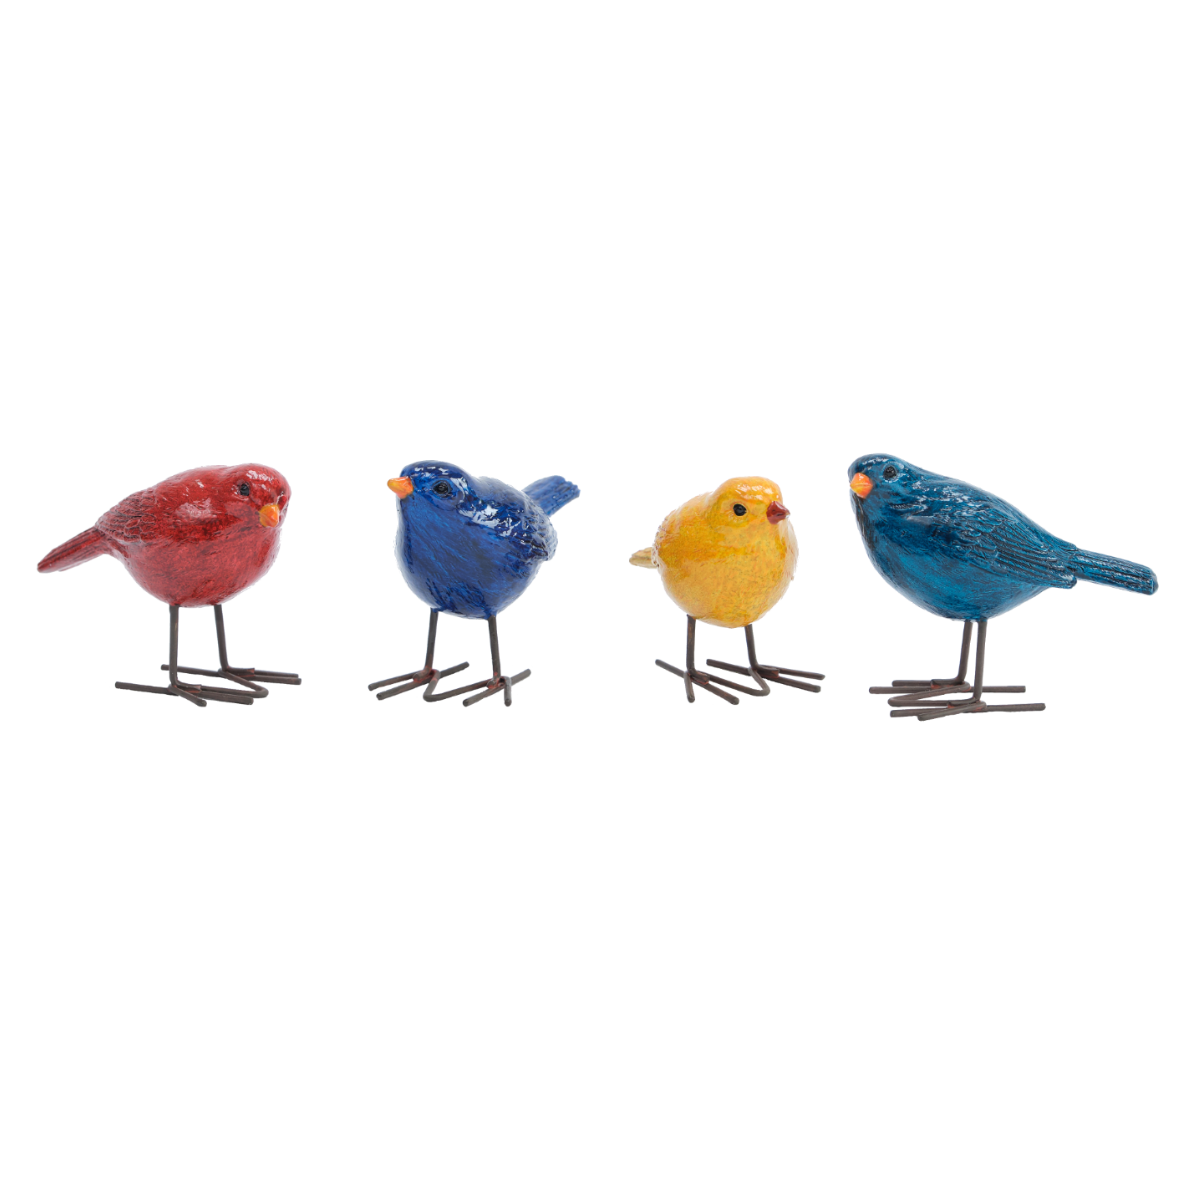 SET OF FOUR SMALL BIRDS